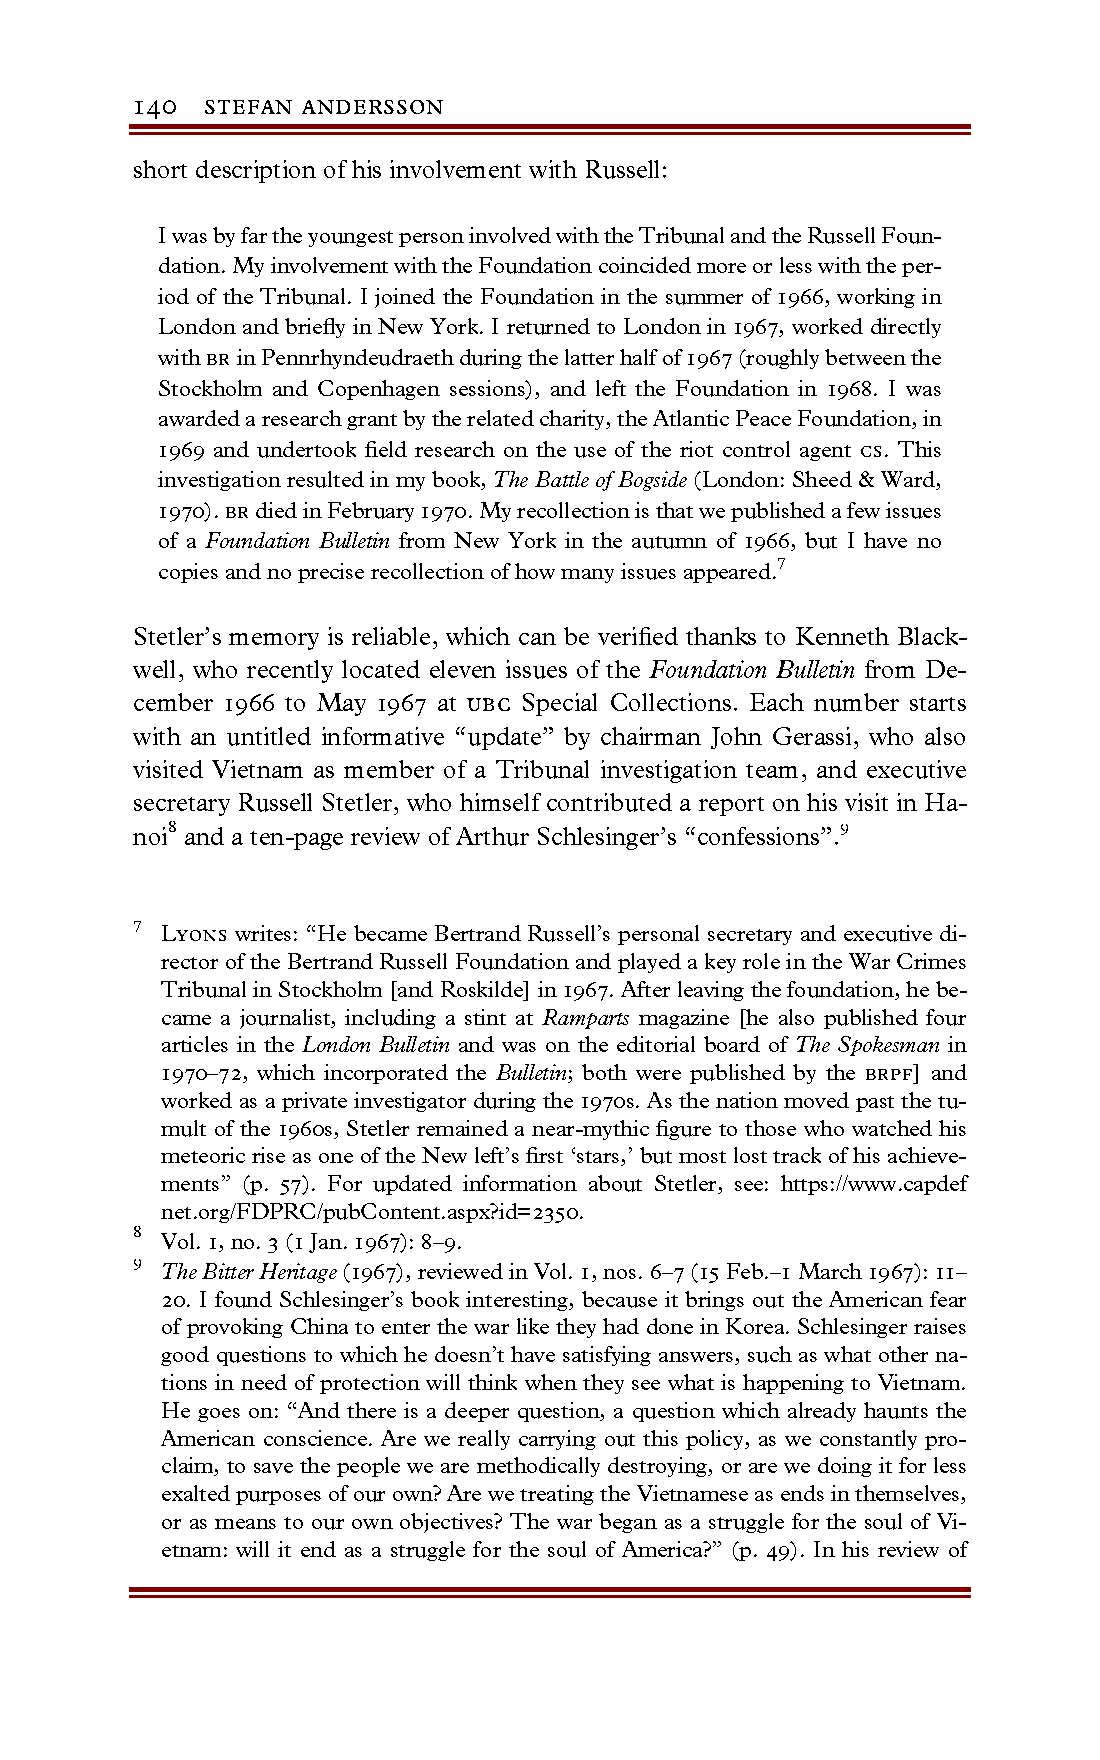 Anderson-- Pages from RJ 3402 050 red-5 (2)-1_Page_06